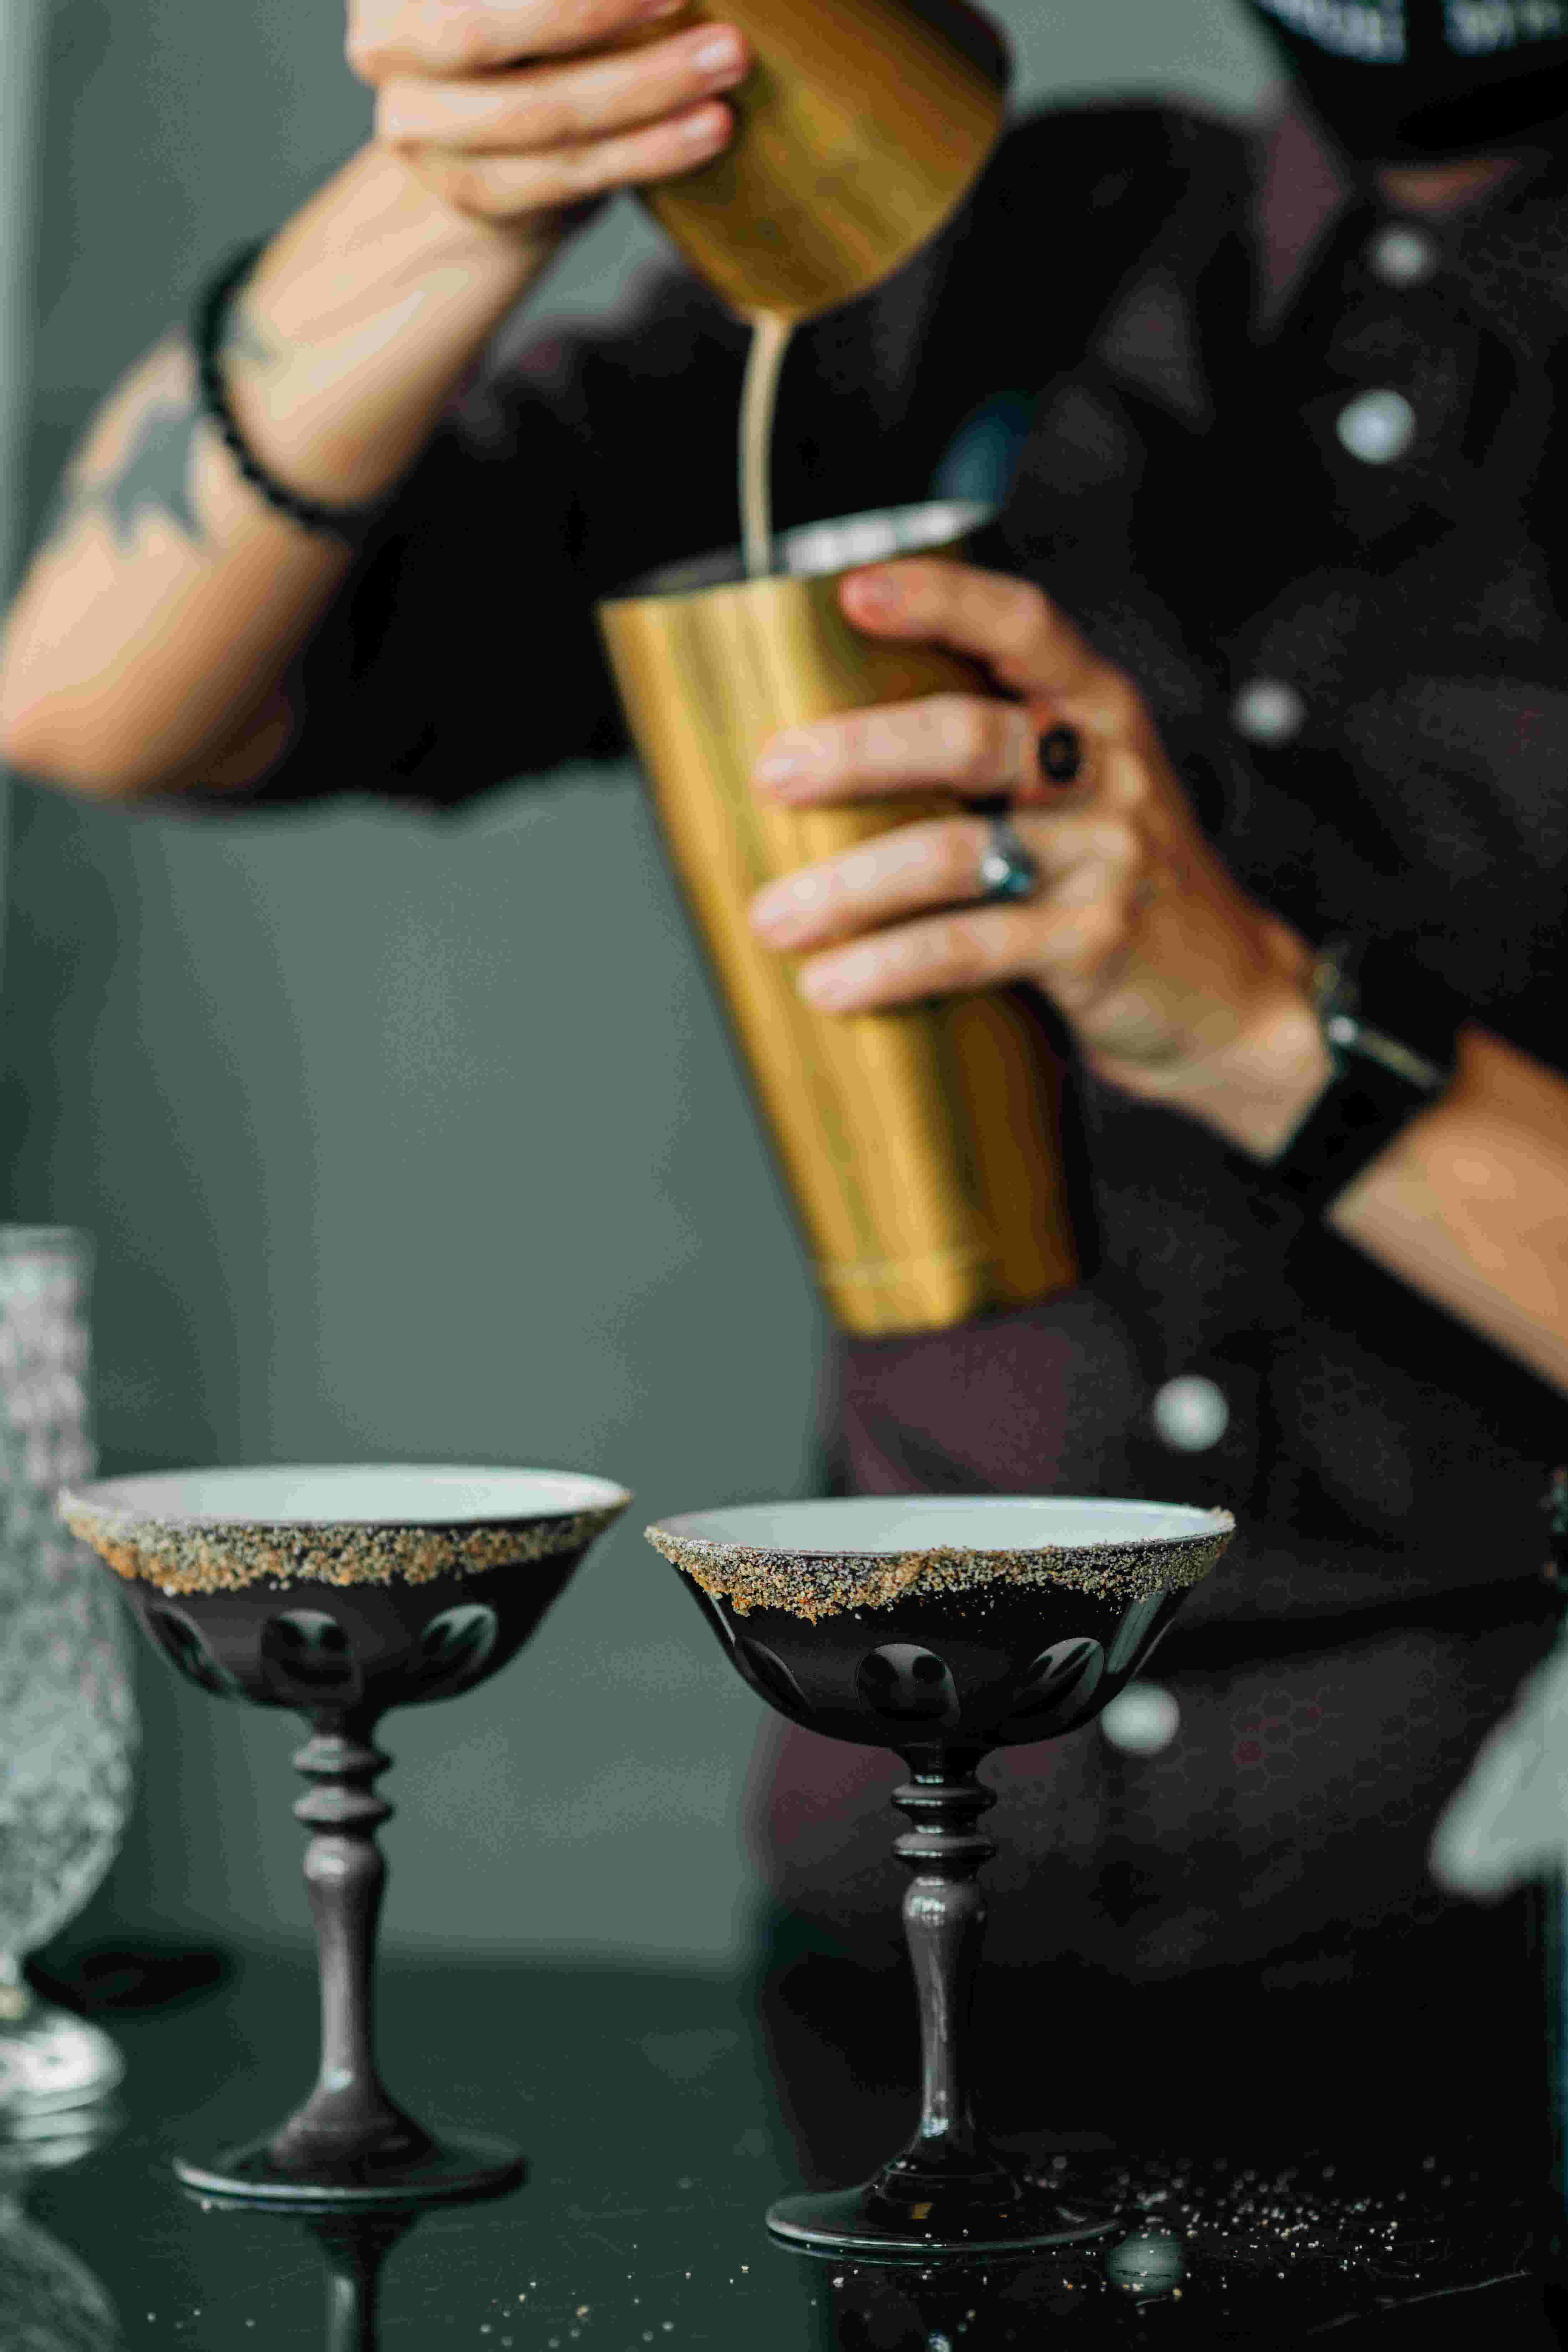 A bartender mixing up a cocktail and pouring between two gold colored mixing shaker cups